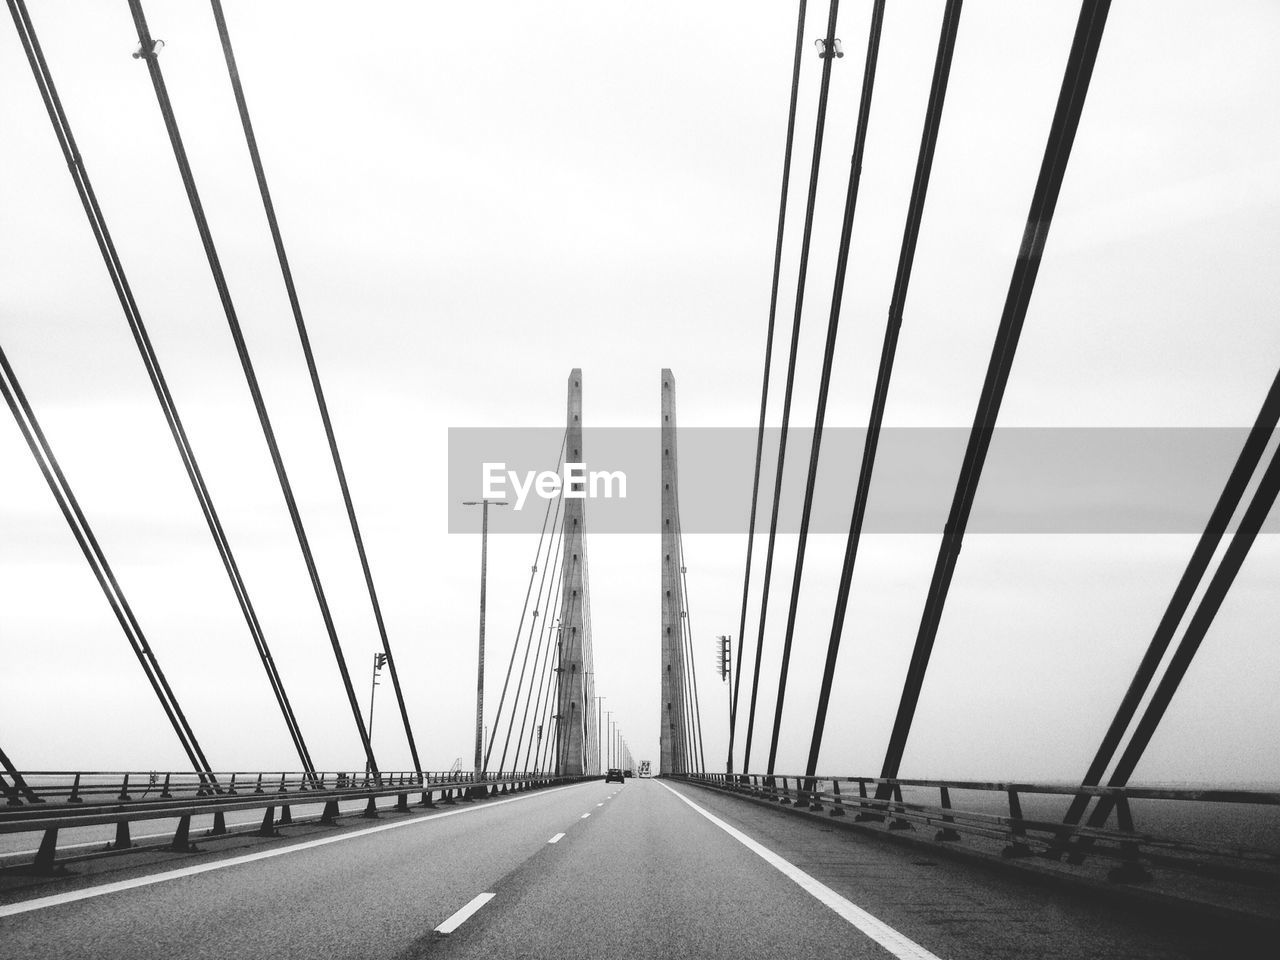 Cables and towers of bridge against sky